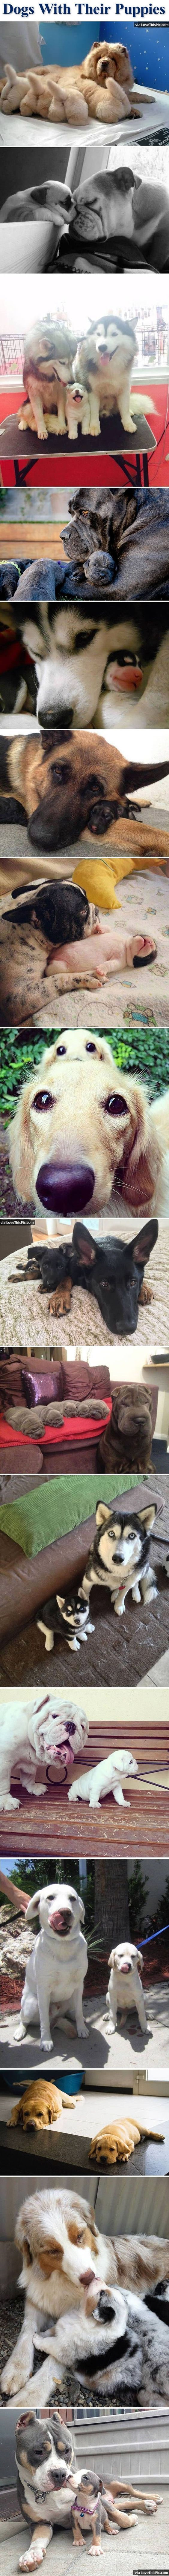 best puppies and other cute things images on pinterest funny